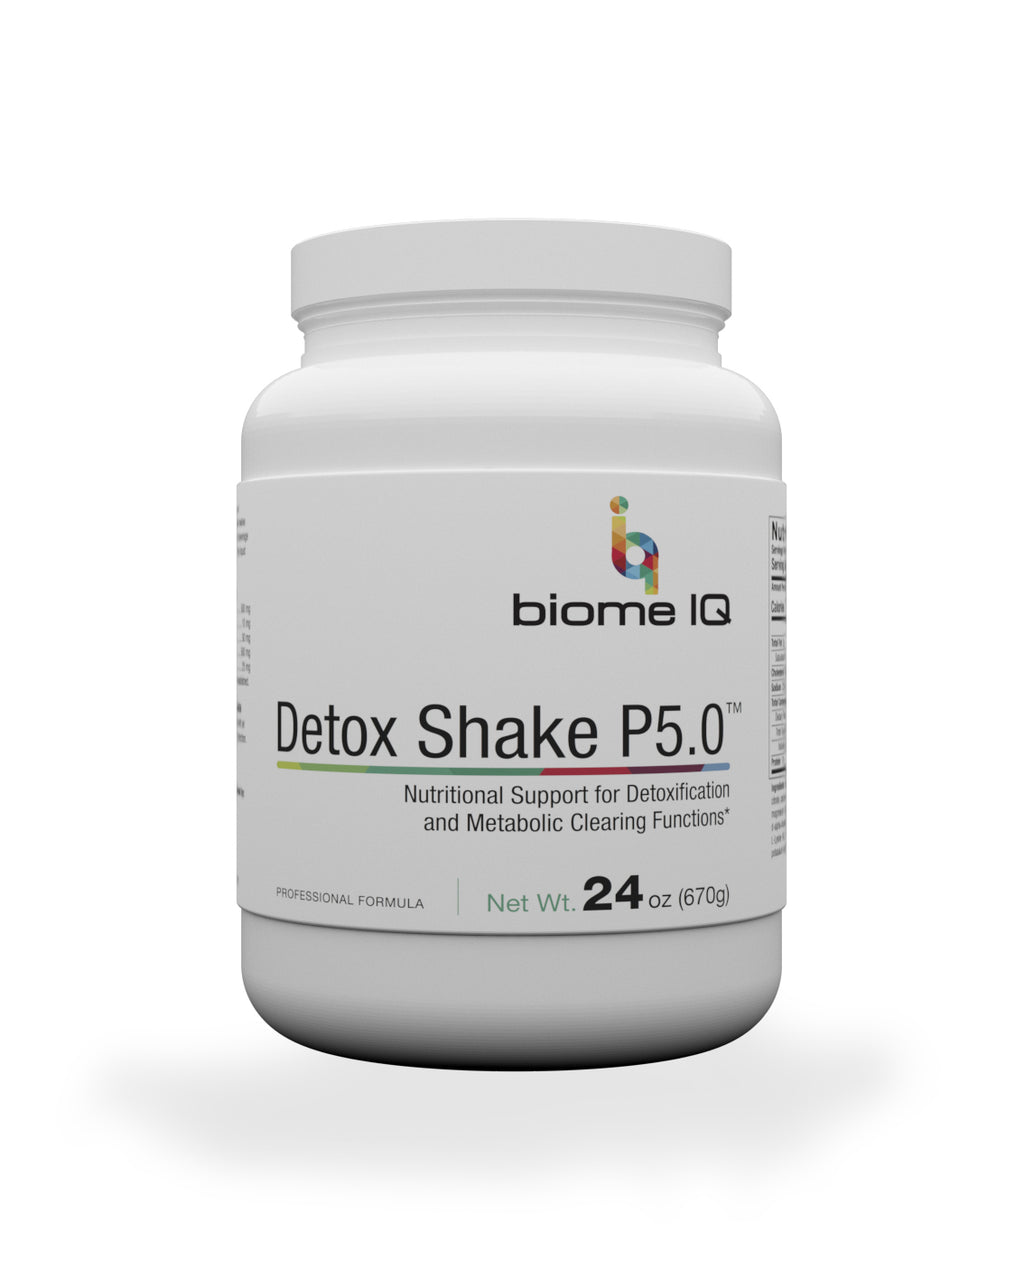 BiomeIQ MTHFR Supplements - Detox Shake P5.0